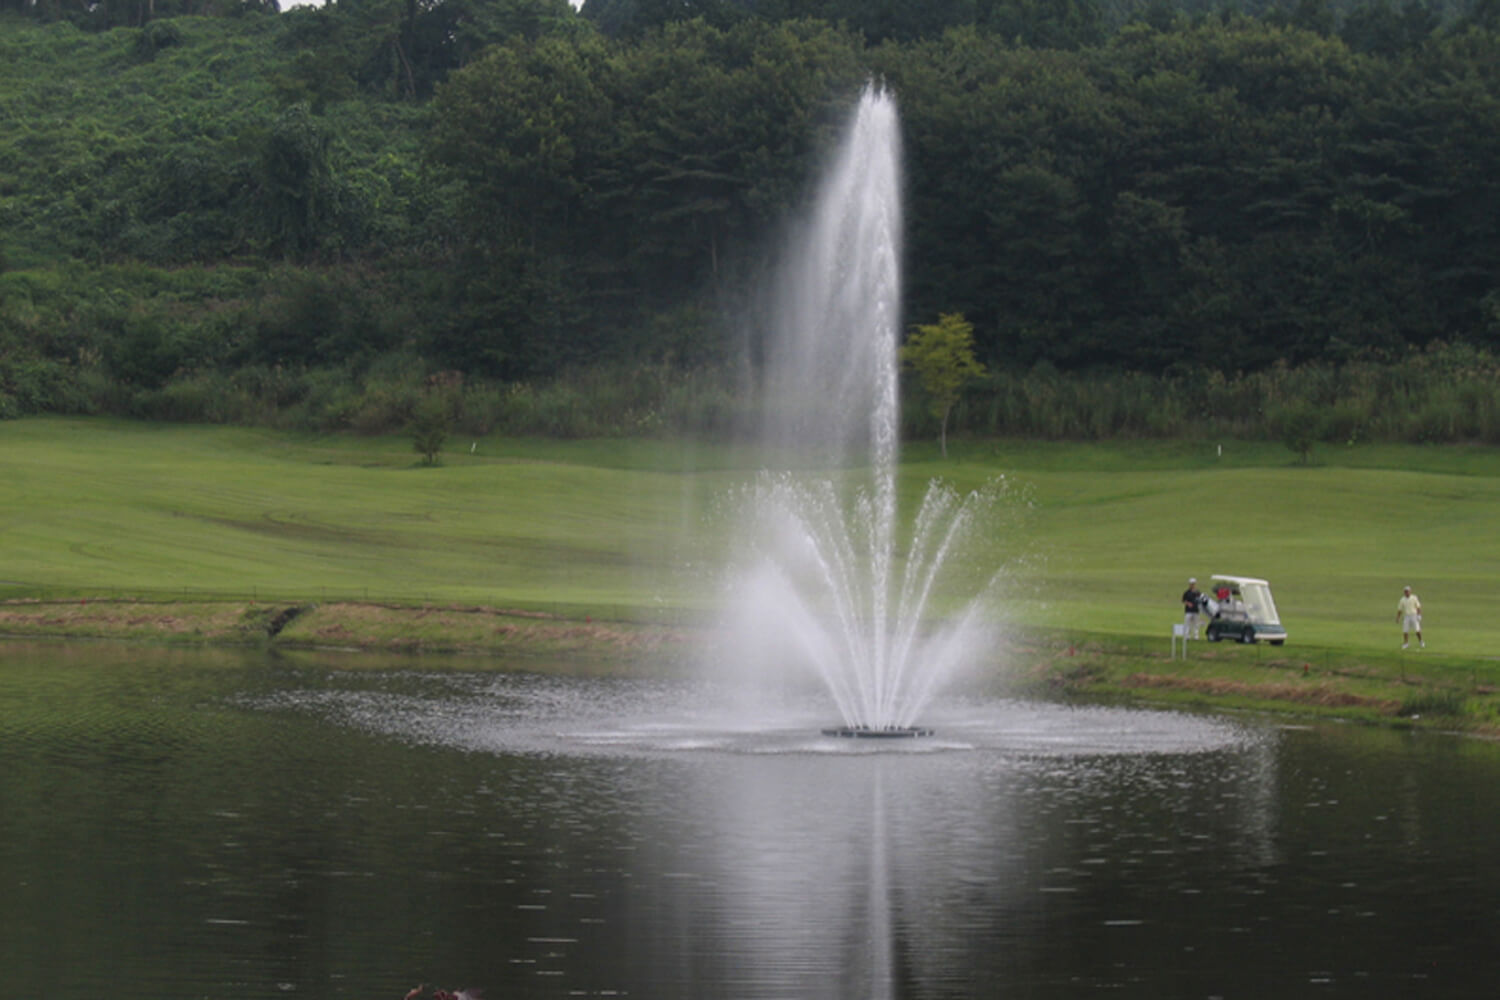 One of Otterbine's Triad Giant Aerating Fountains